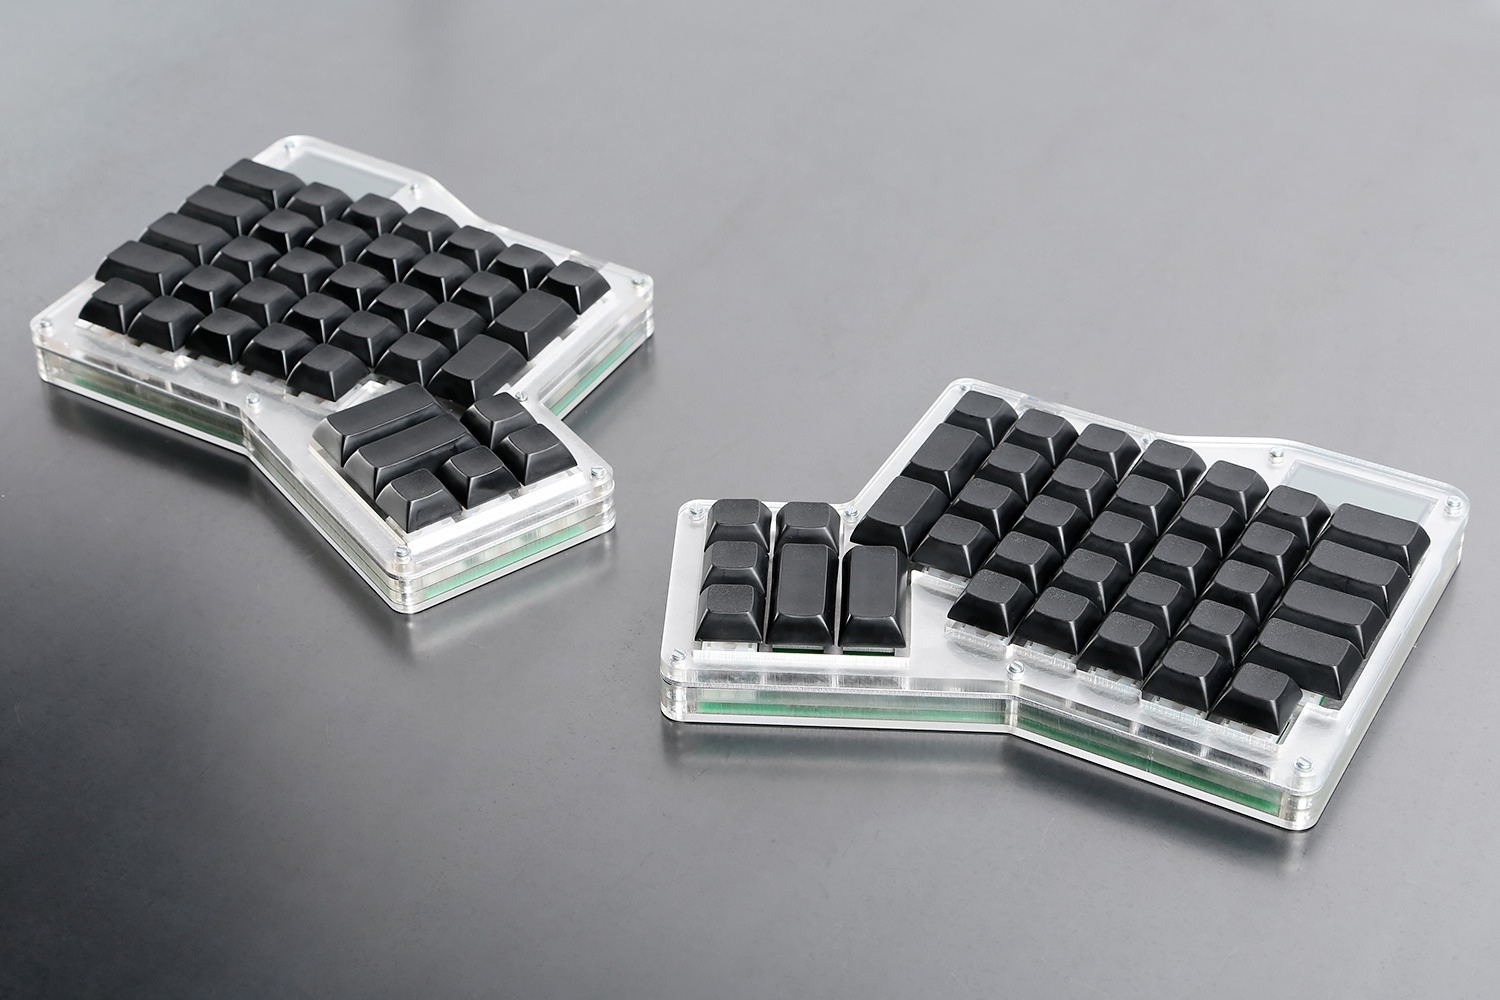 Infinity ErgoDox Mechanical Keyboard Kit